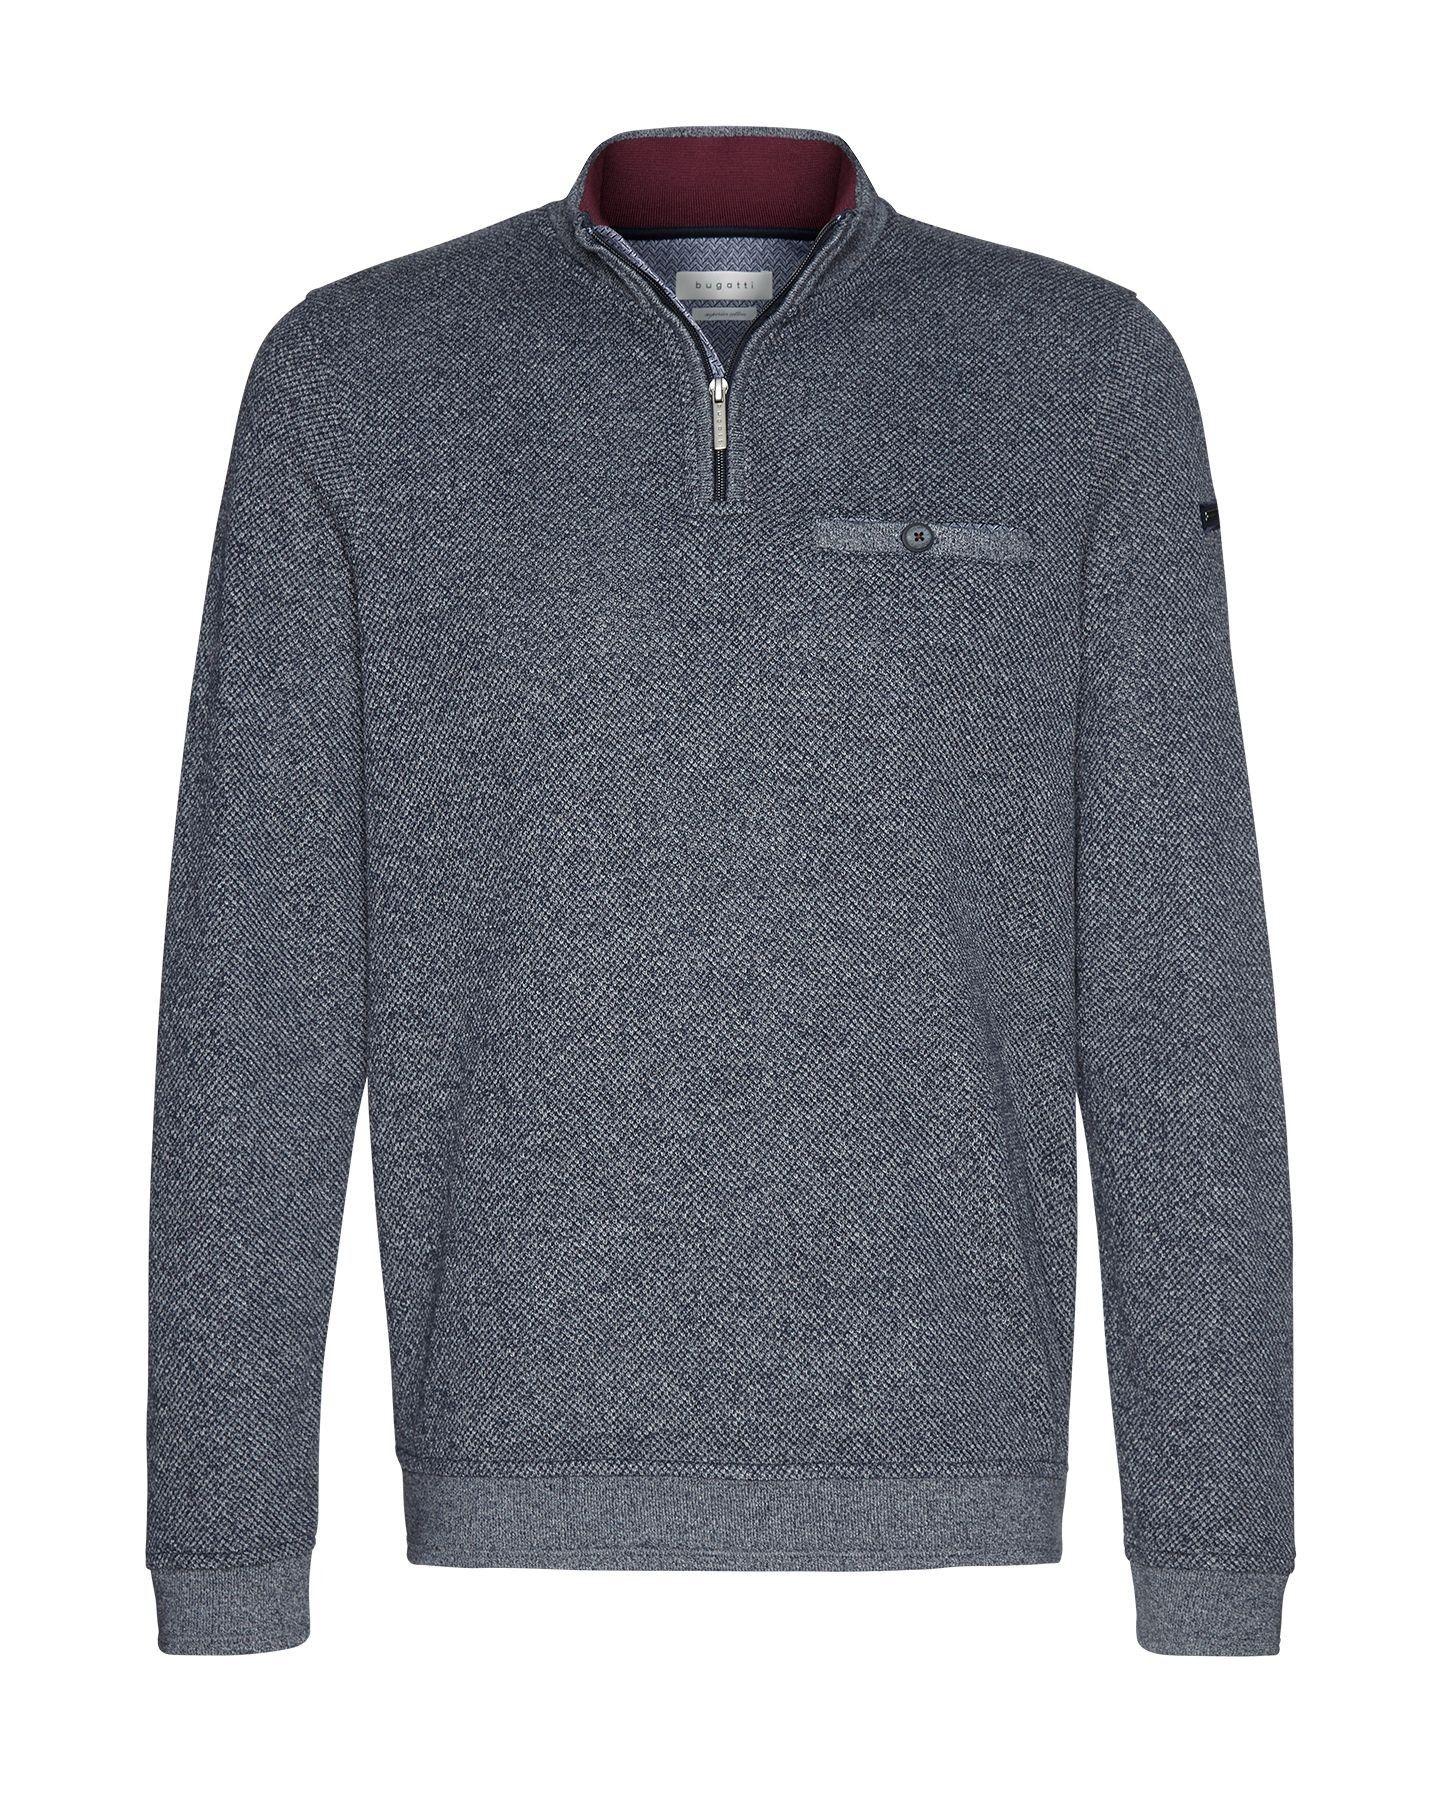 Bugatti - Herren Pullover Sweat-Troyer (Art. Nr.: 25080-8550) – Bild 1